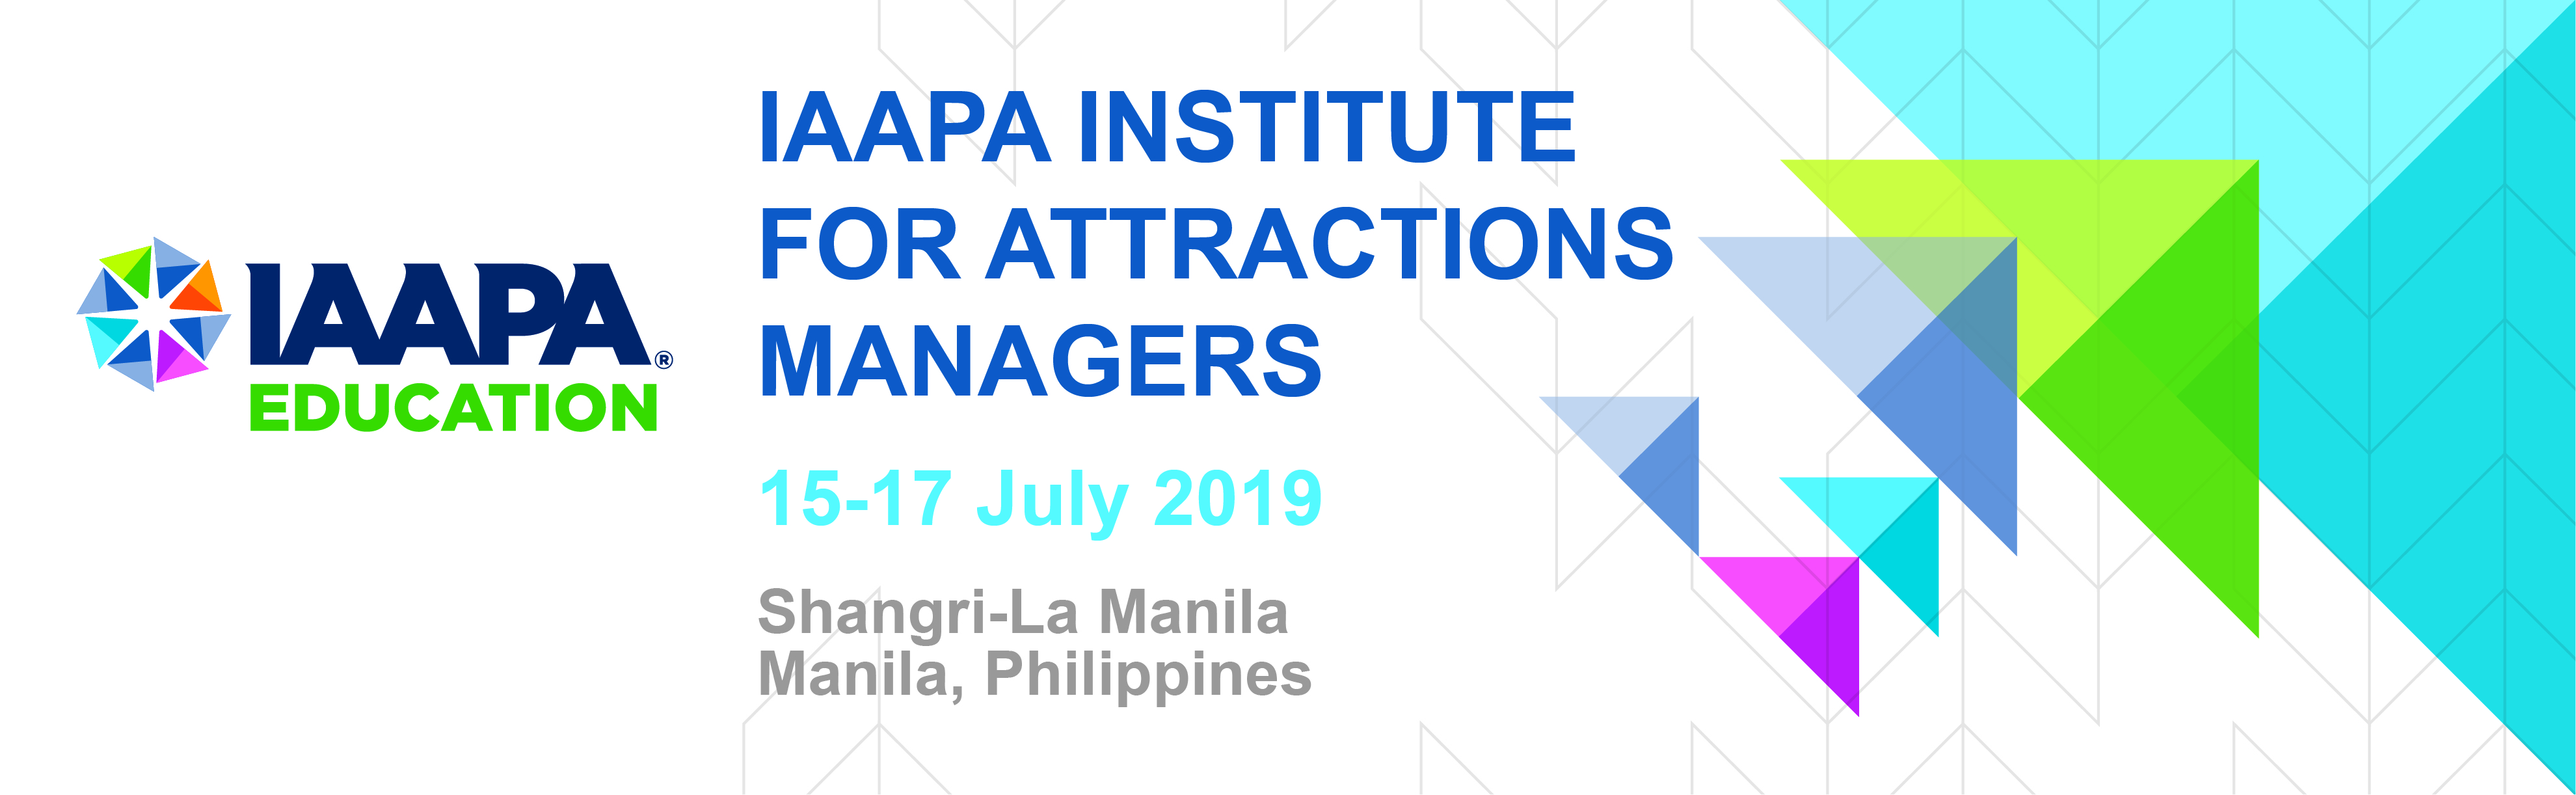 IAAPA Institute for Attractions Managers